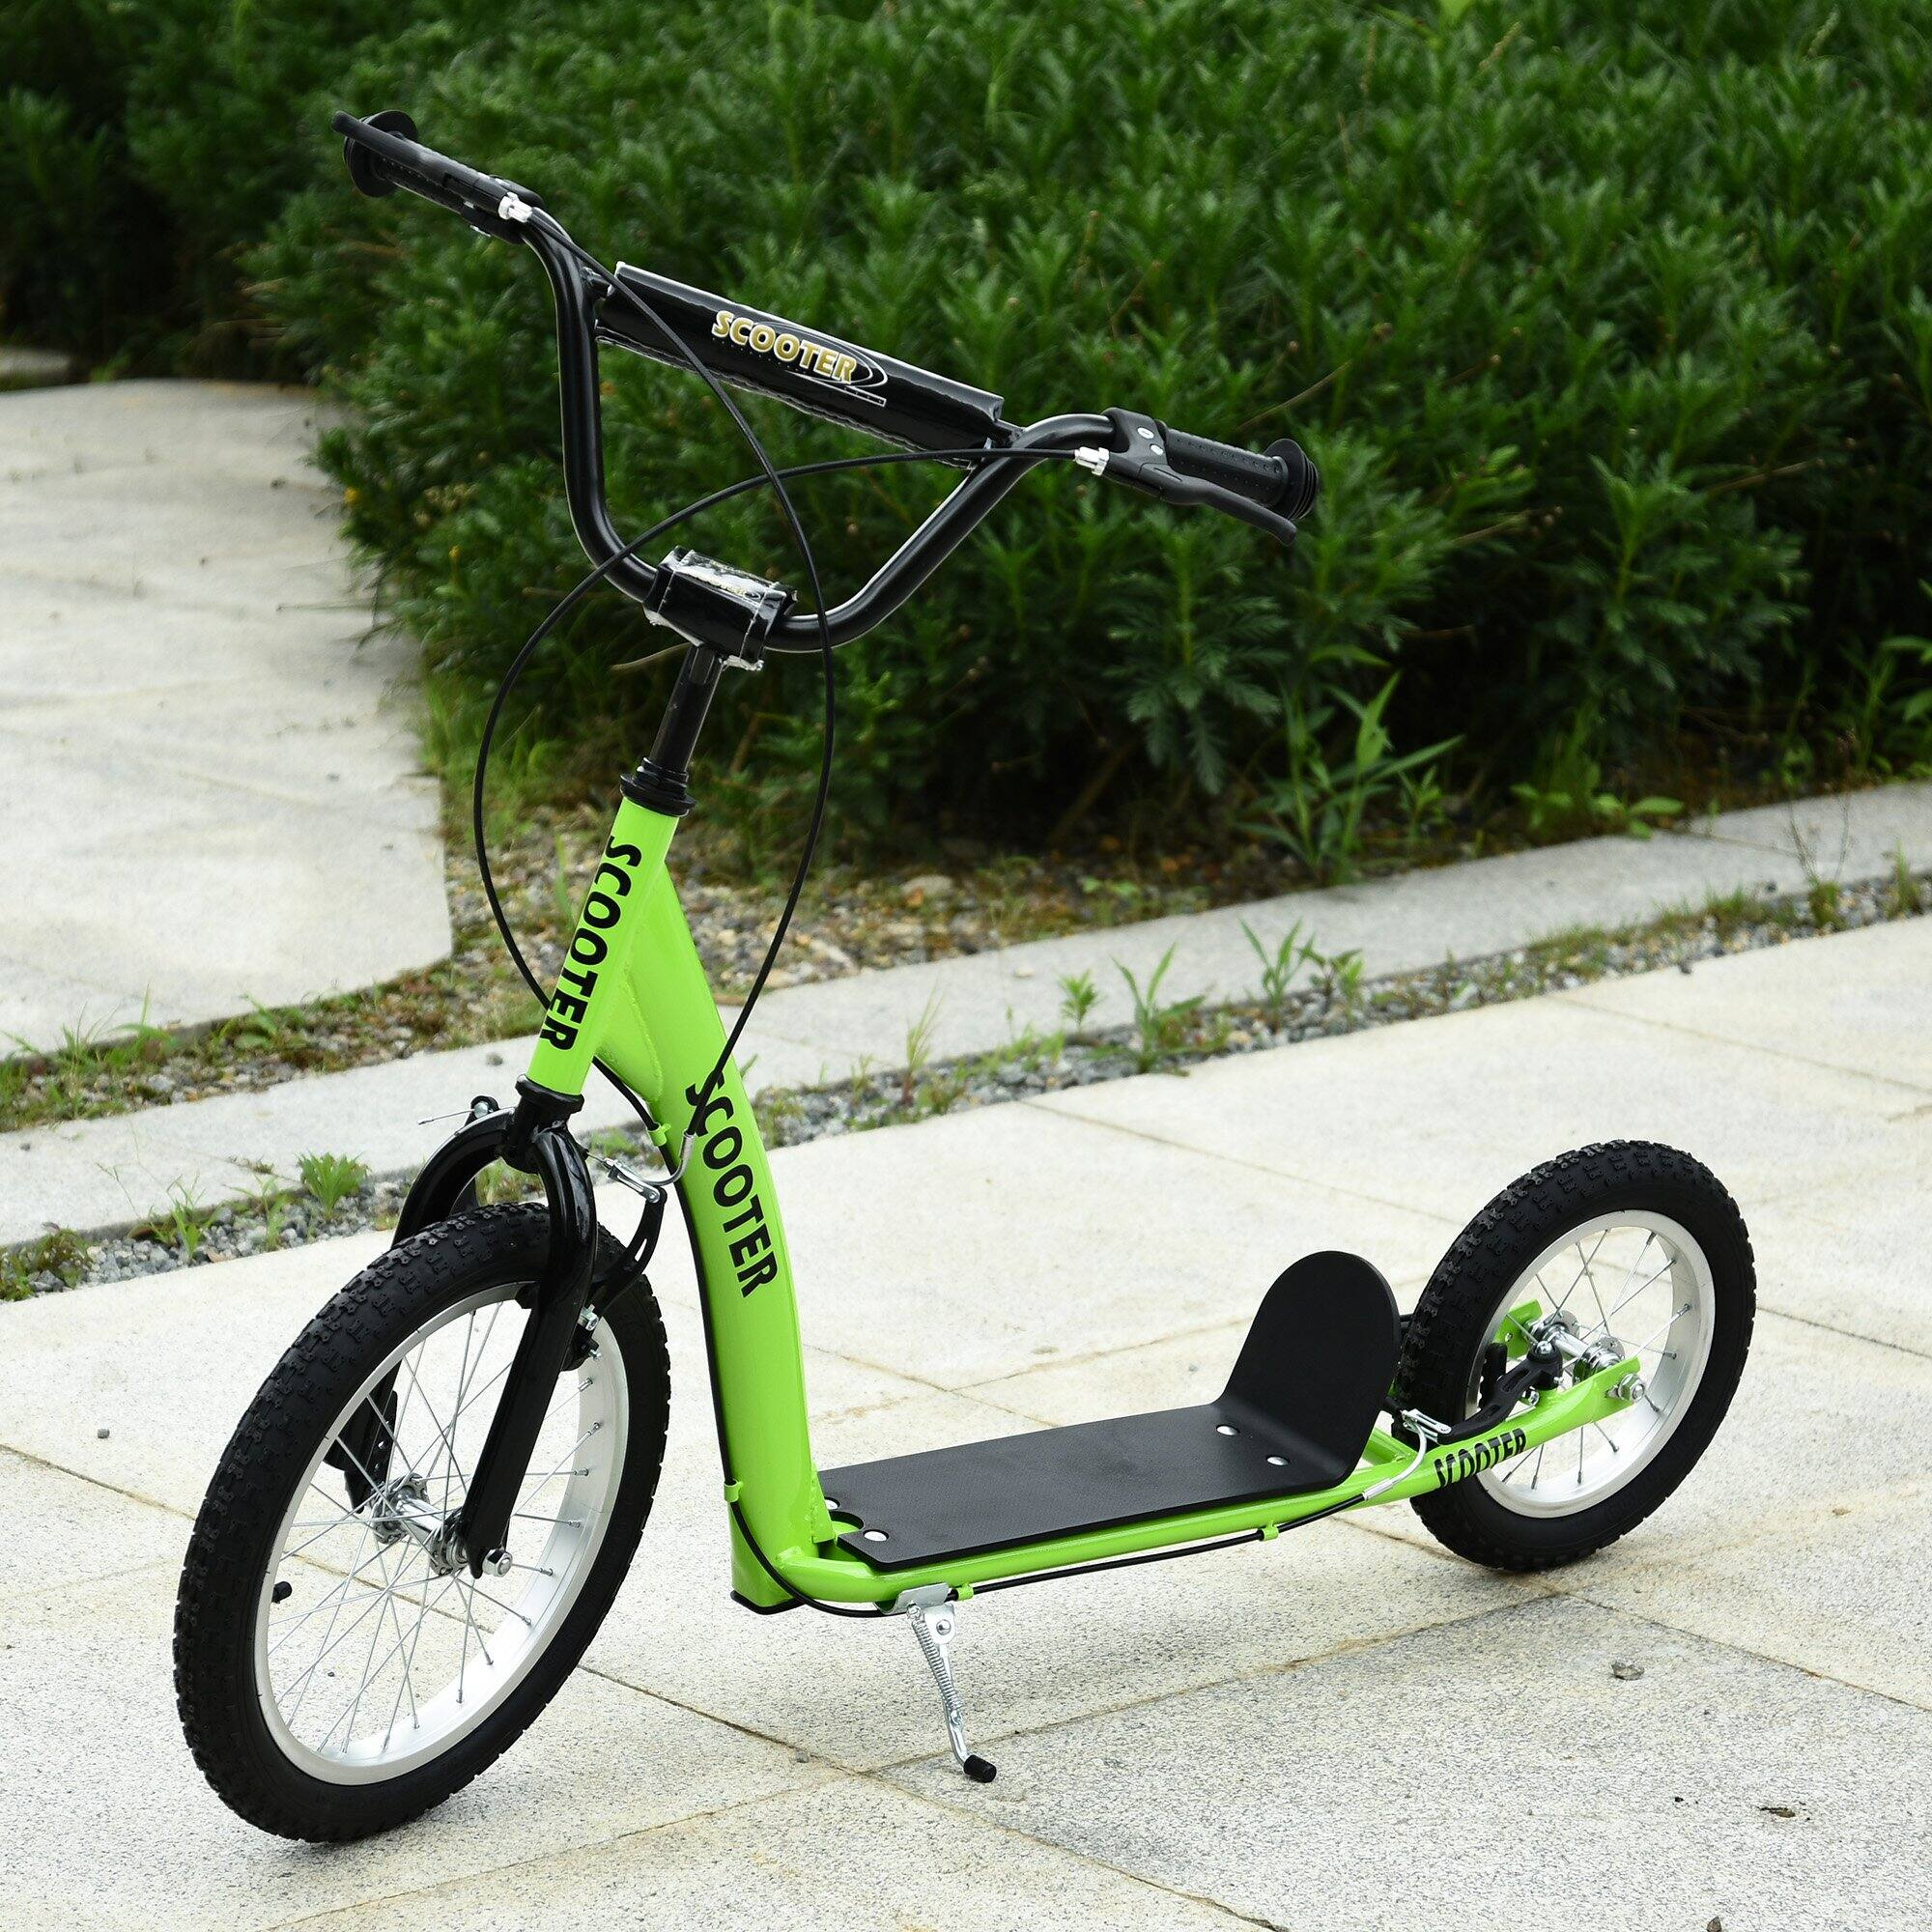 Aosom Youth Scooter Ride On Toy For Kids 5+ $49.99 + Free Shipping